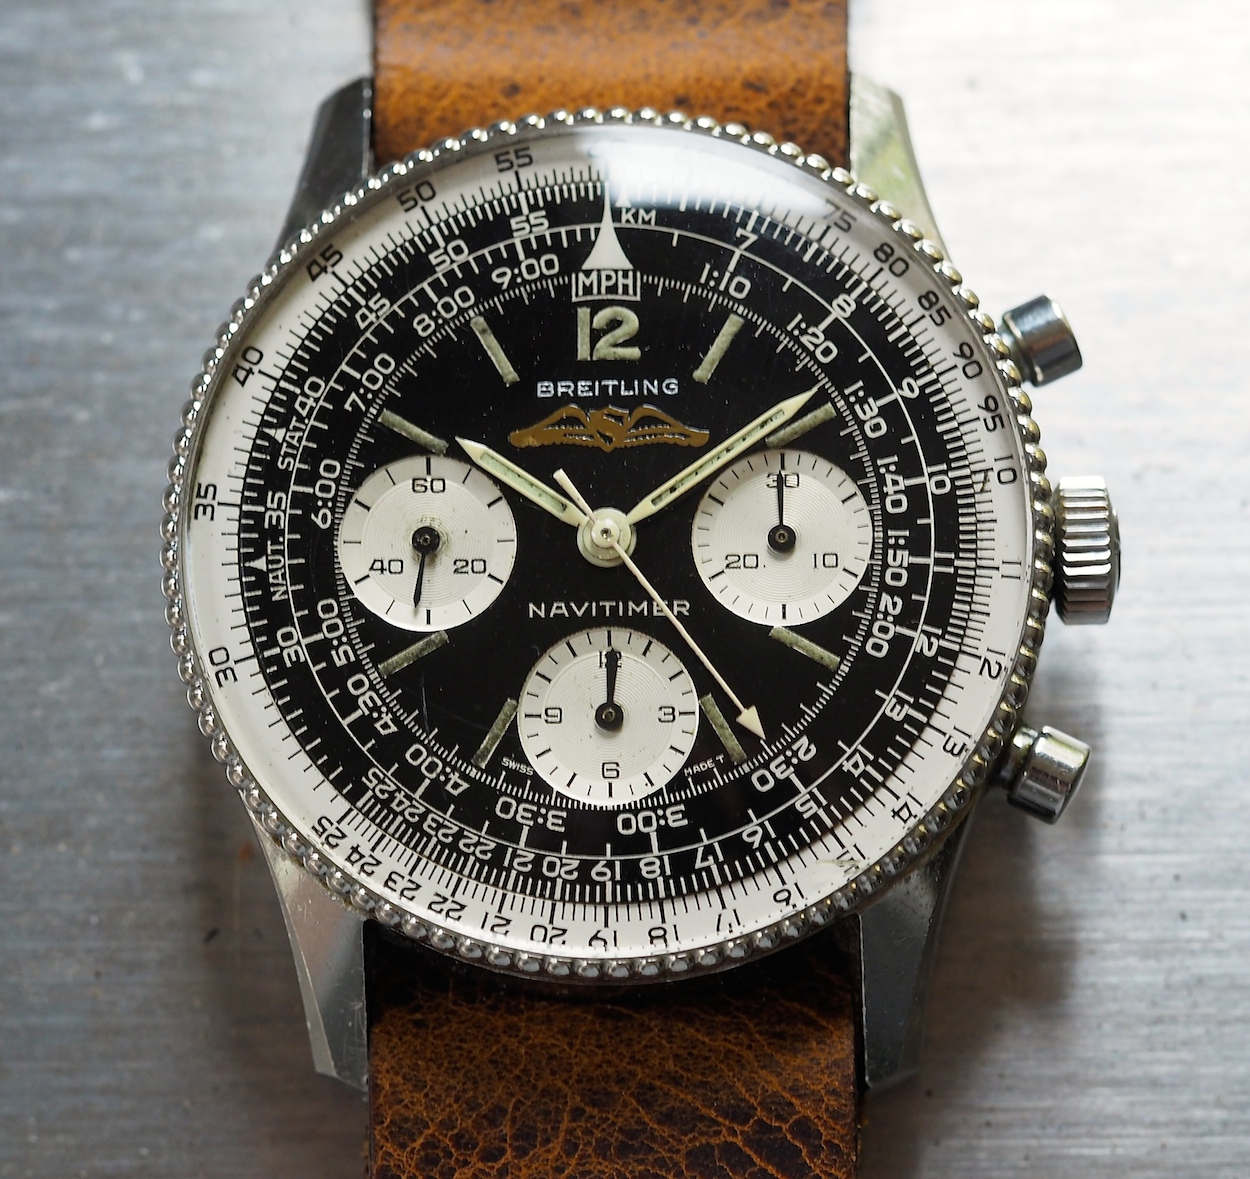 Replica Breitling Navitimer 01 Steel Watch Ref.806